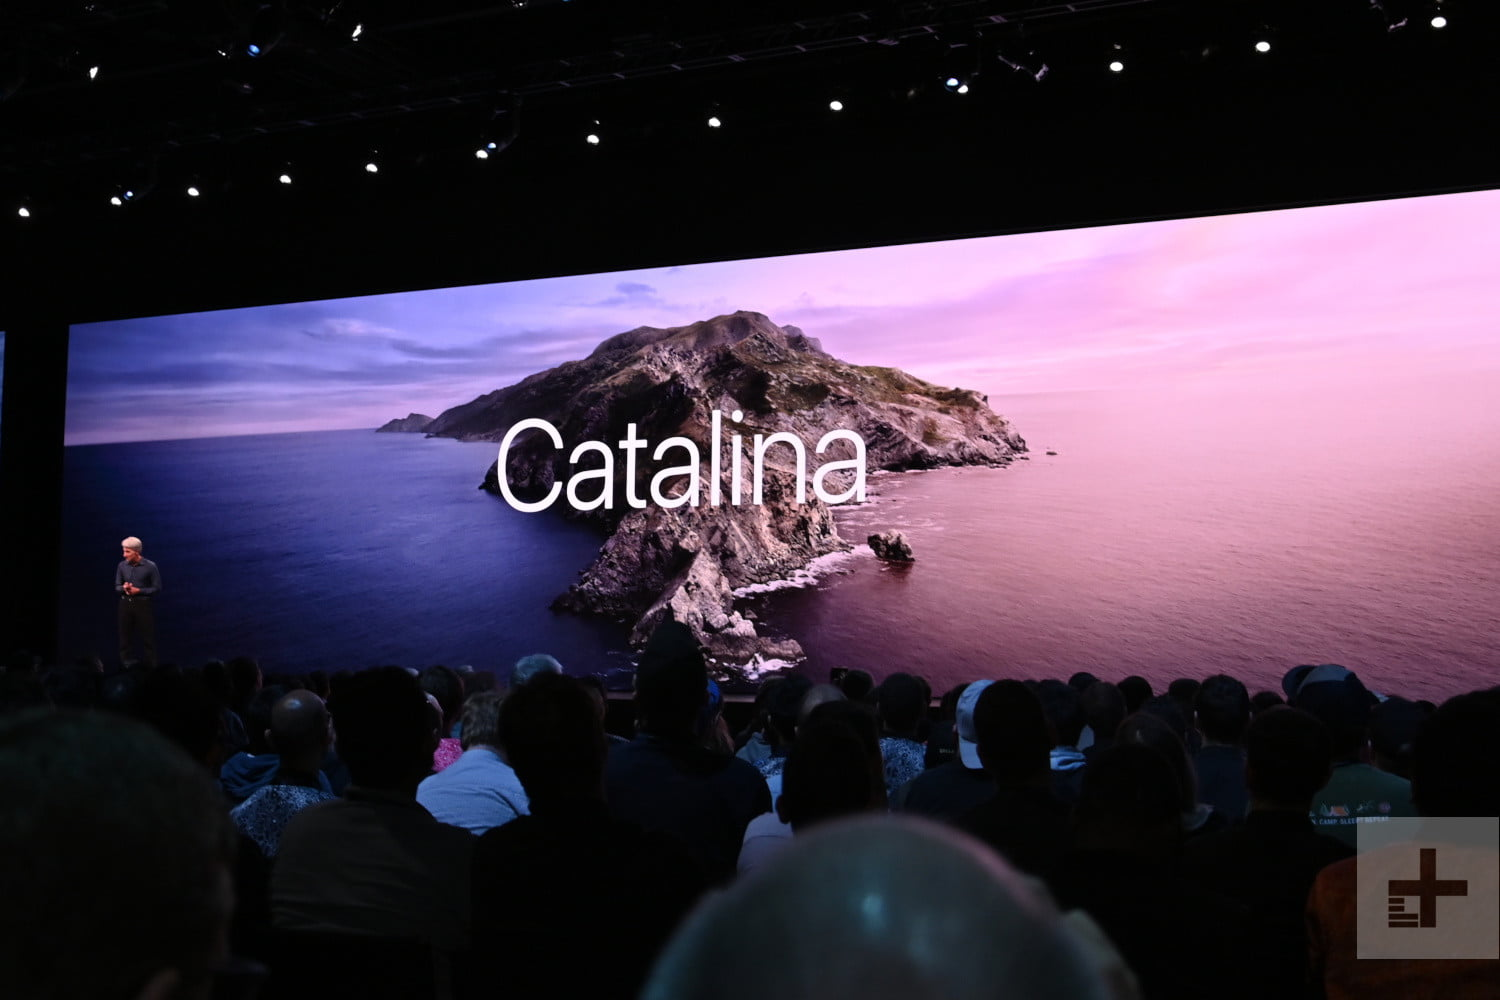 Useful MacOS Catalina tips and tricks to take your Mac to the next level